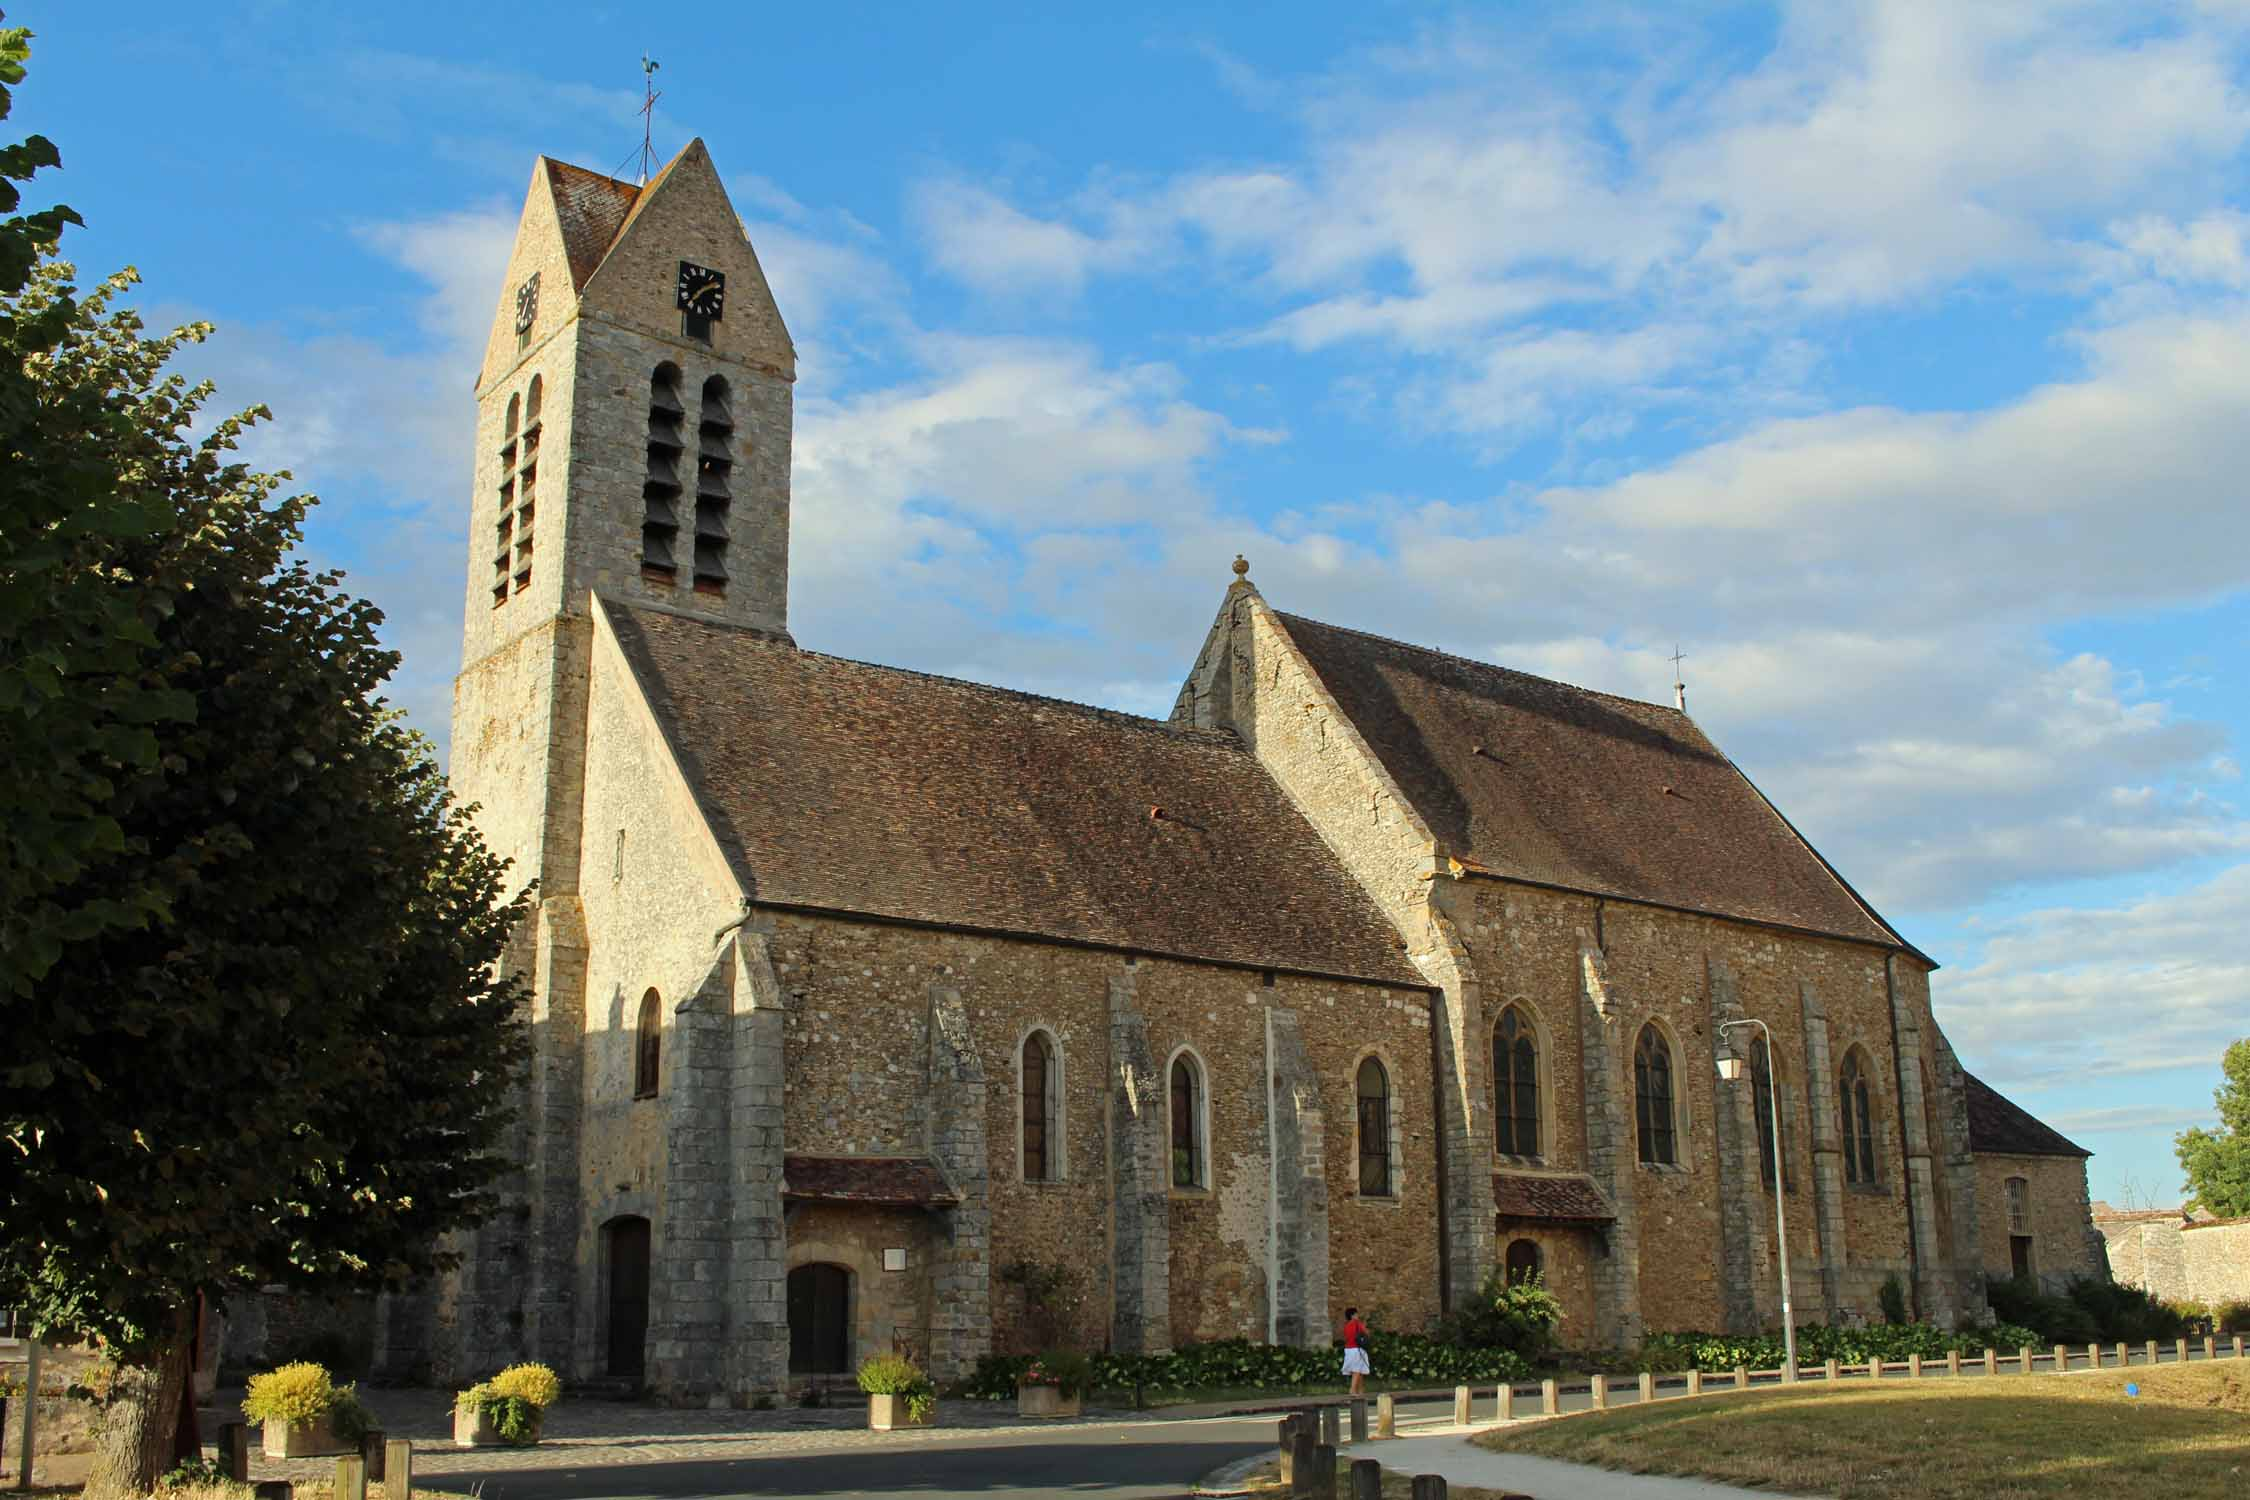 Blandy-les-Tours, Saint-Maurice church